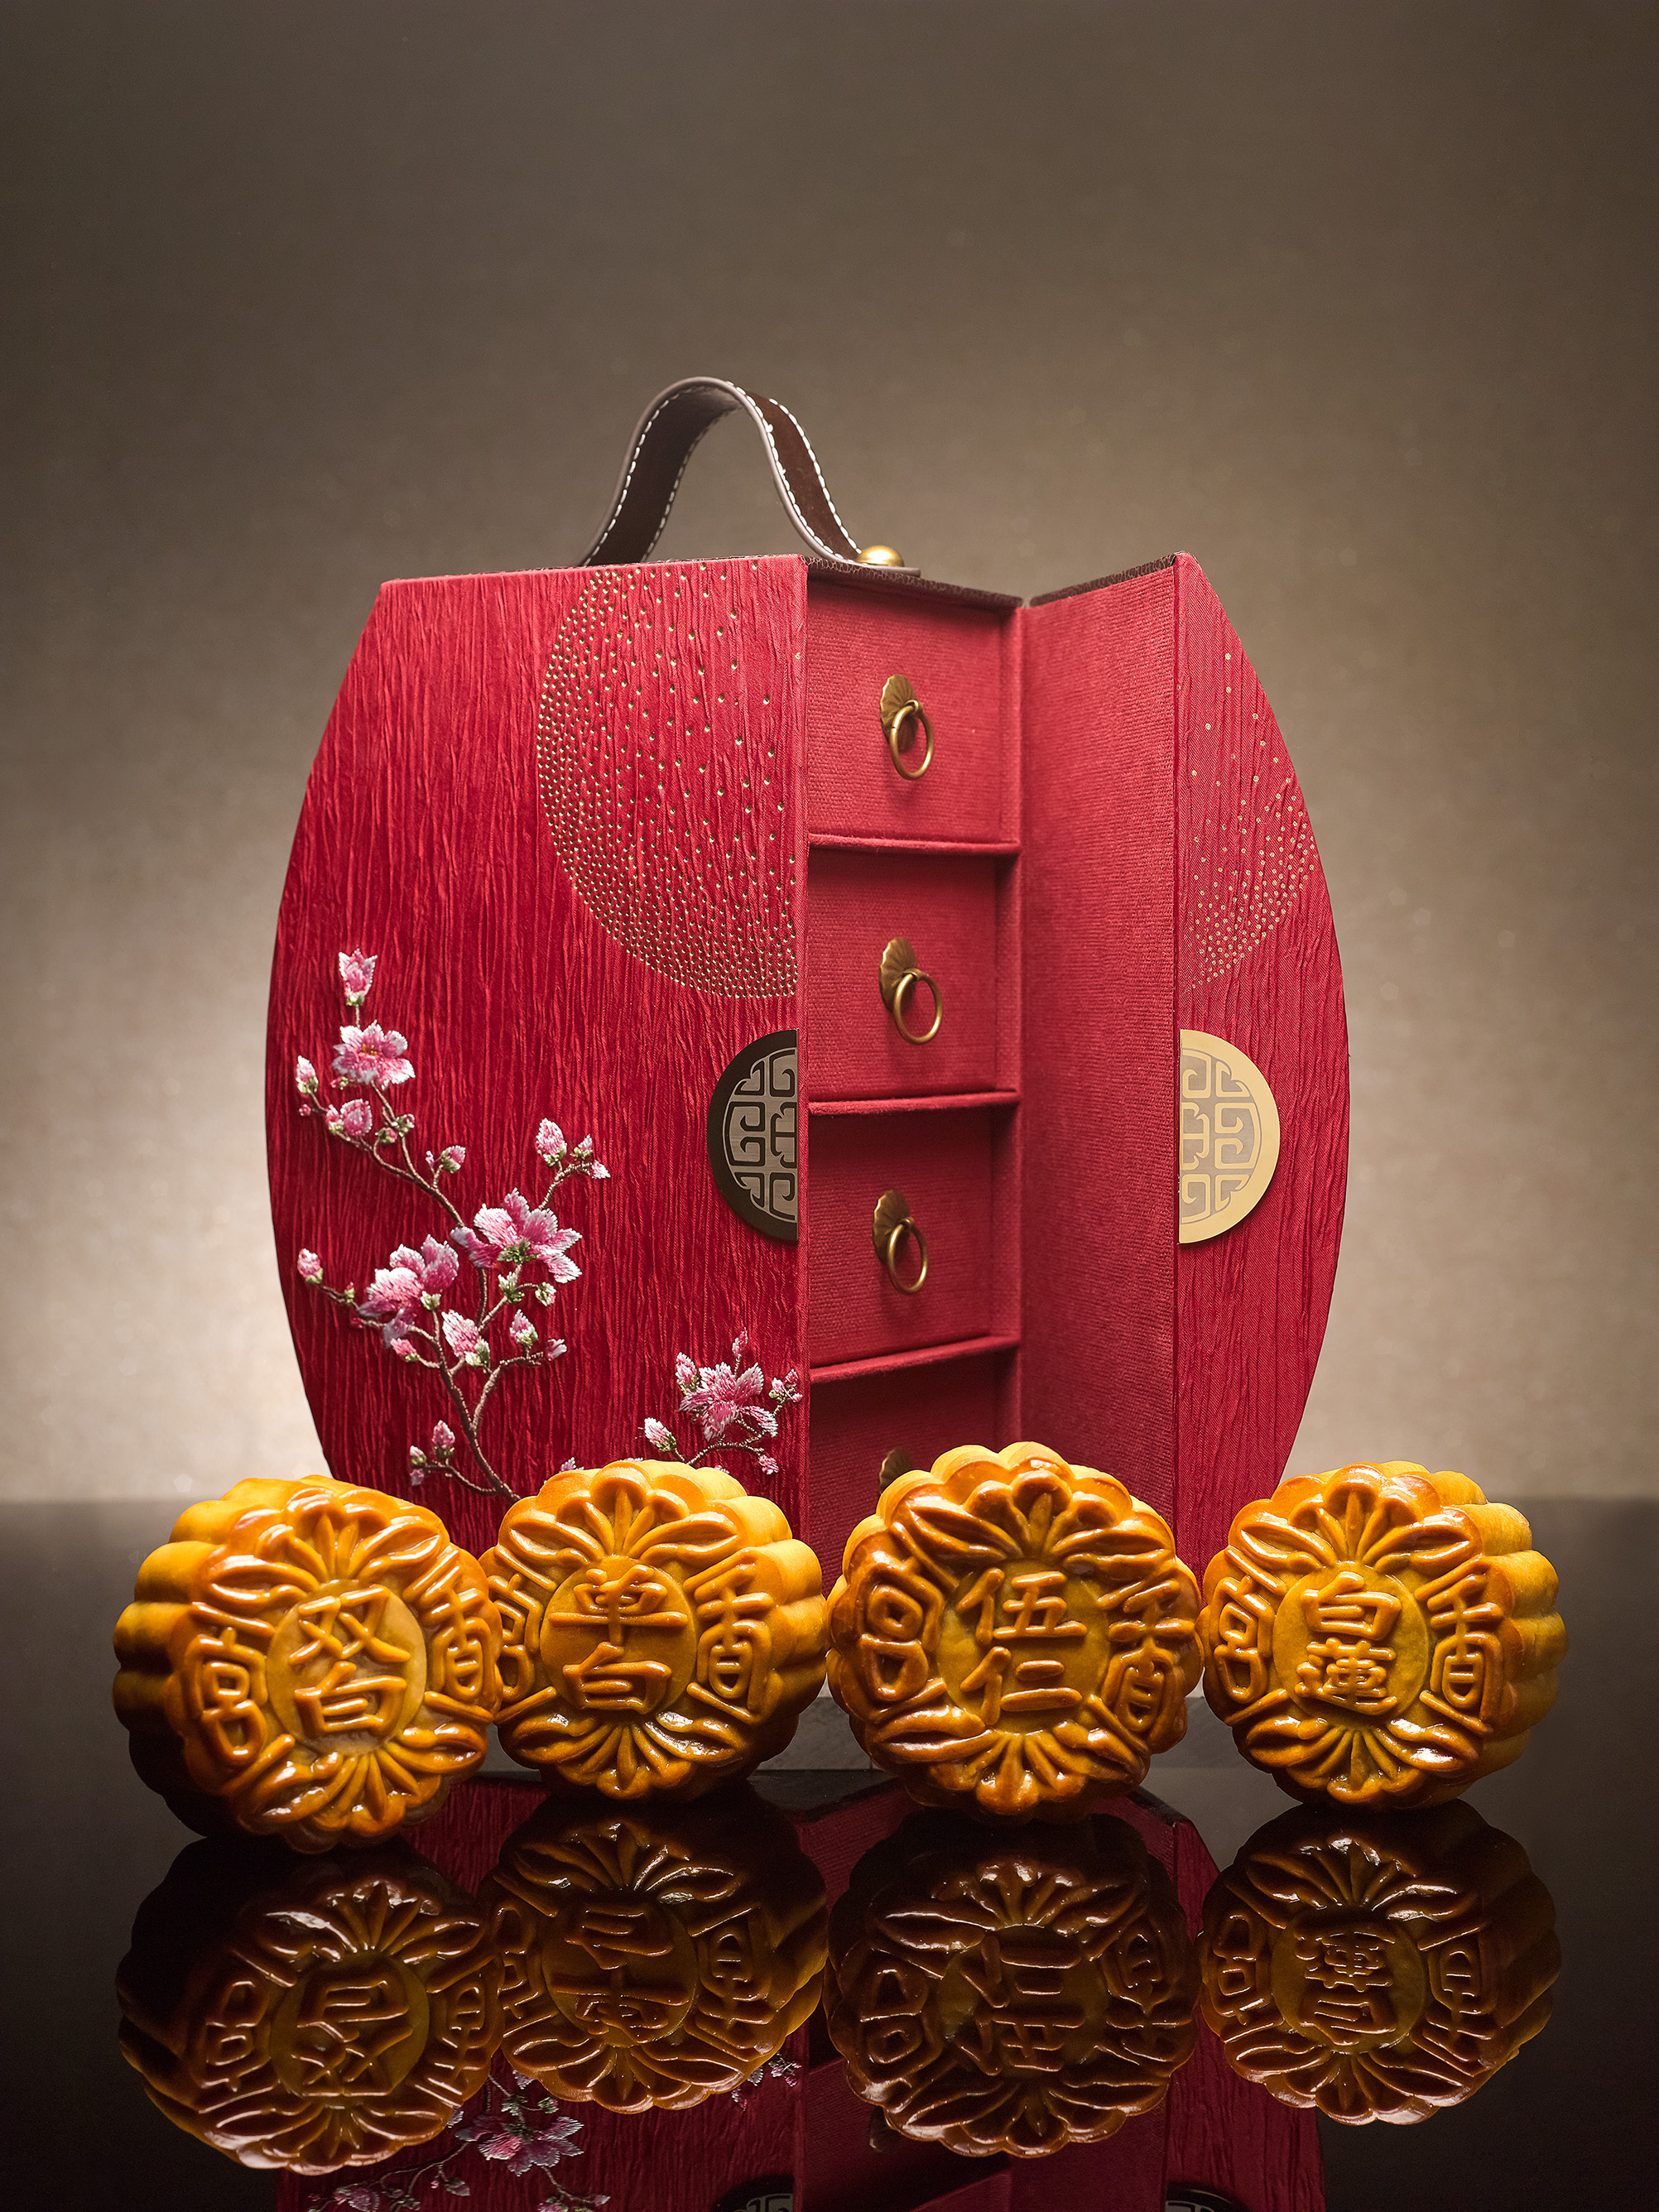 Shang Palace Offers Artisanal Chocolate Trilogy This Mid